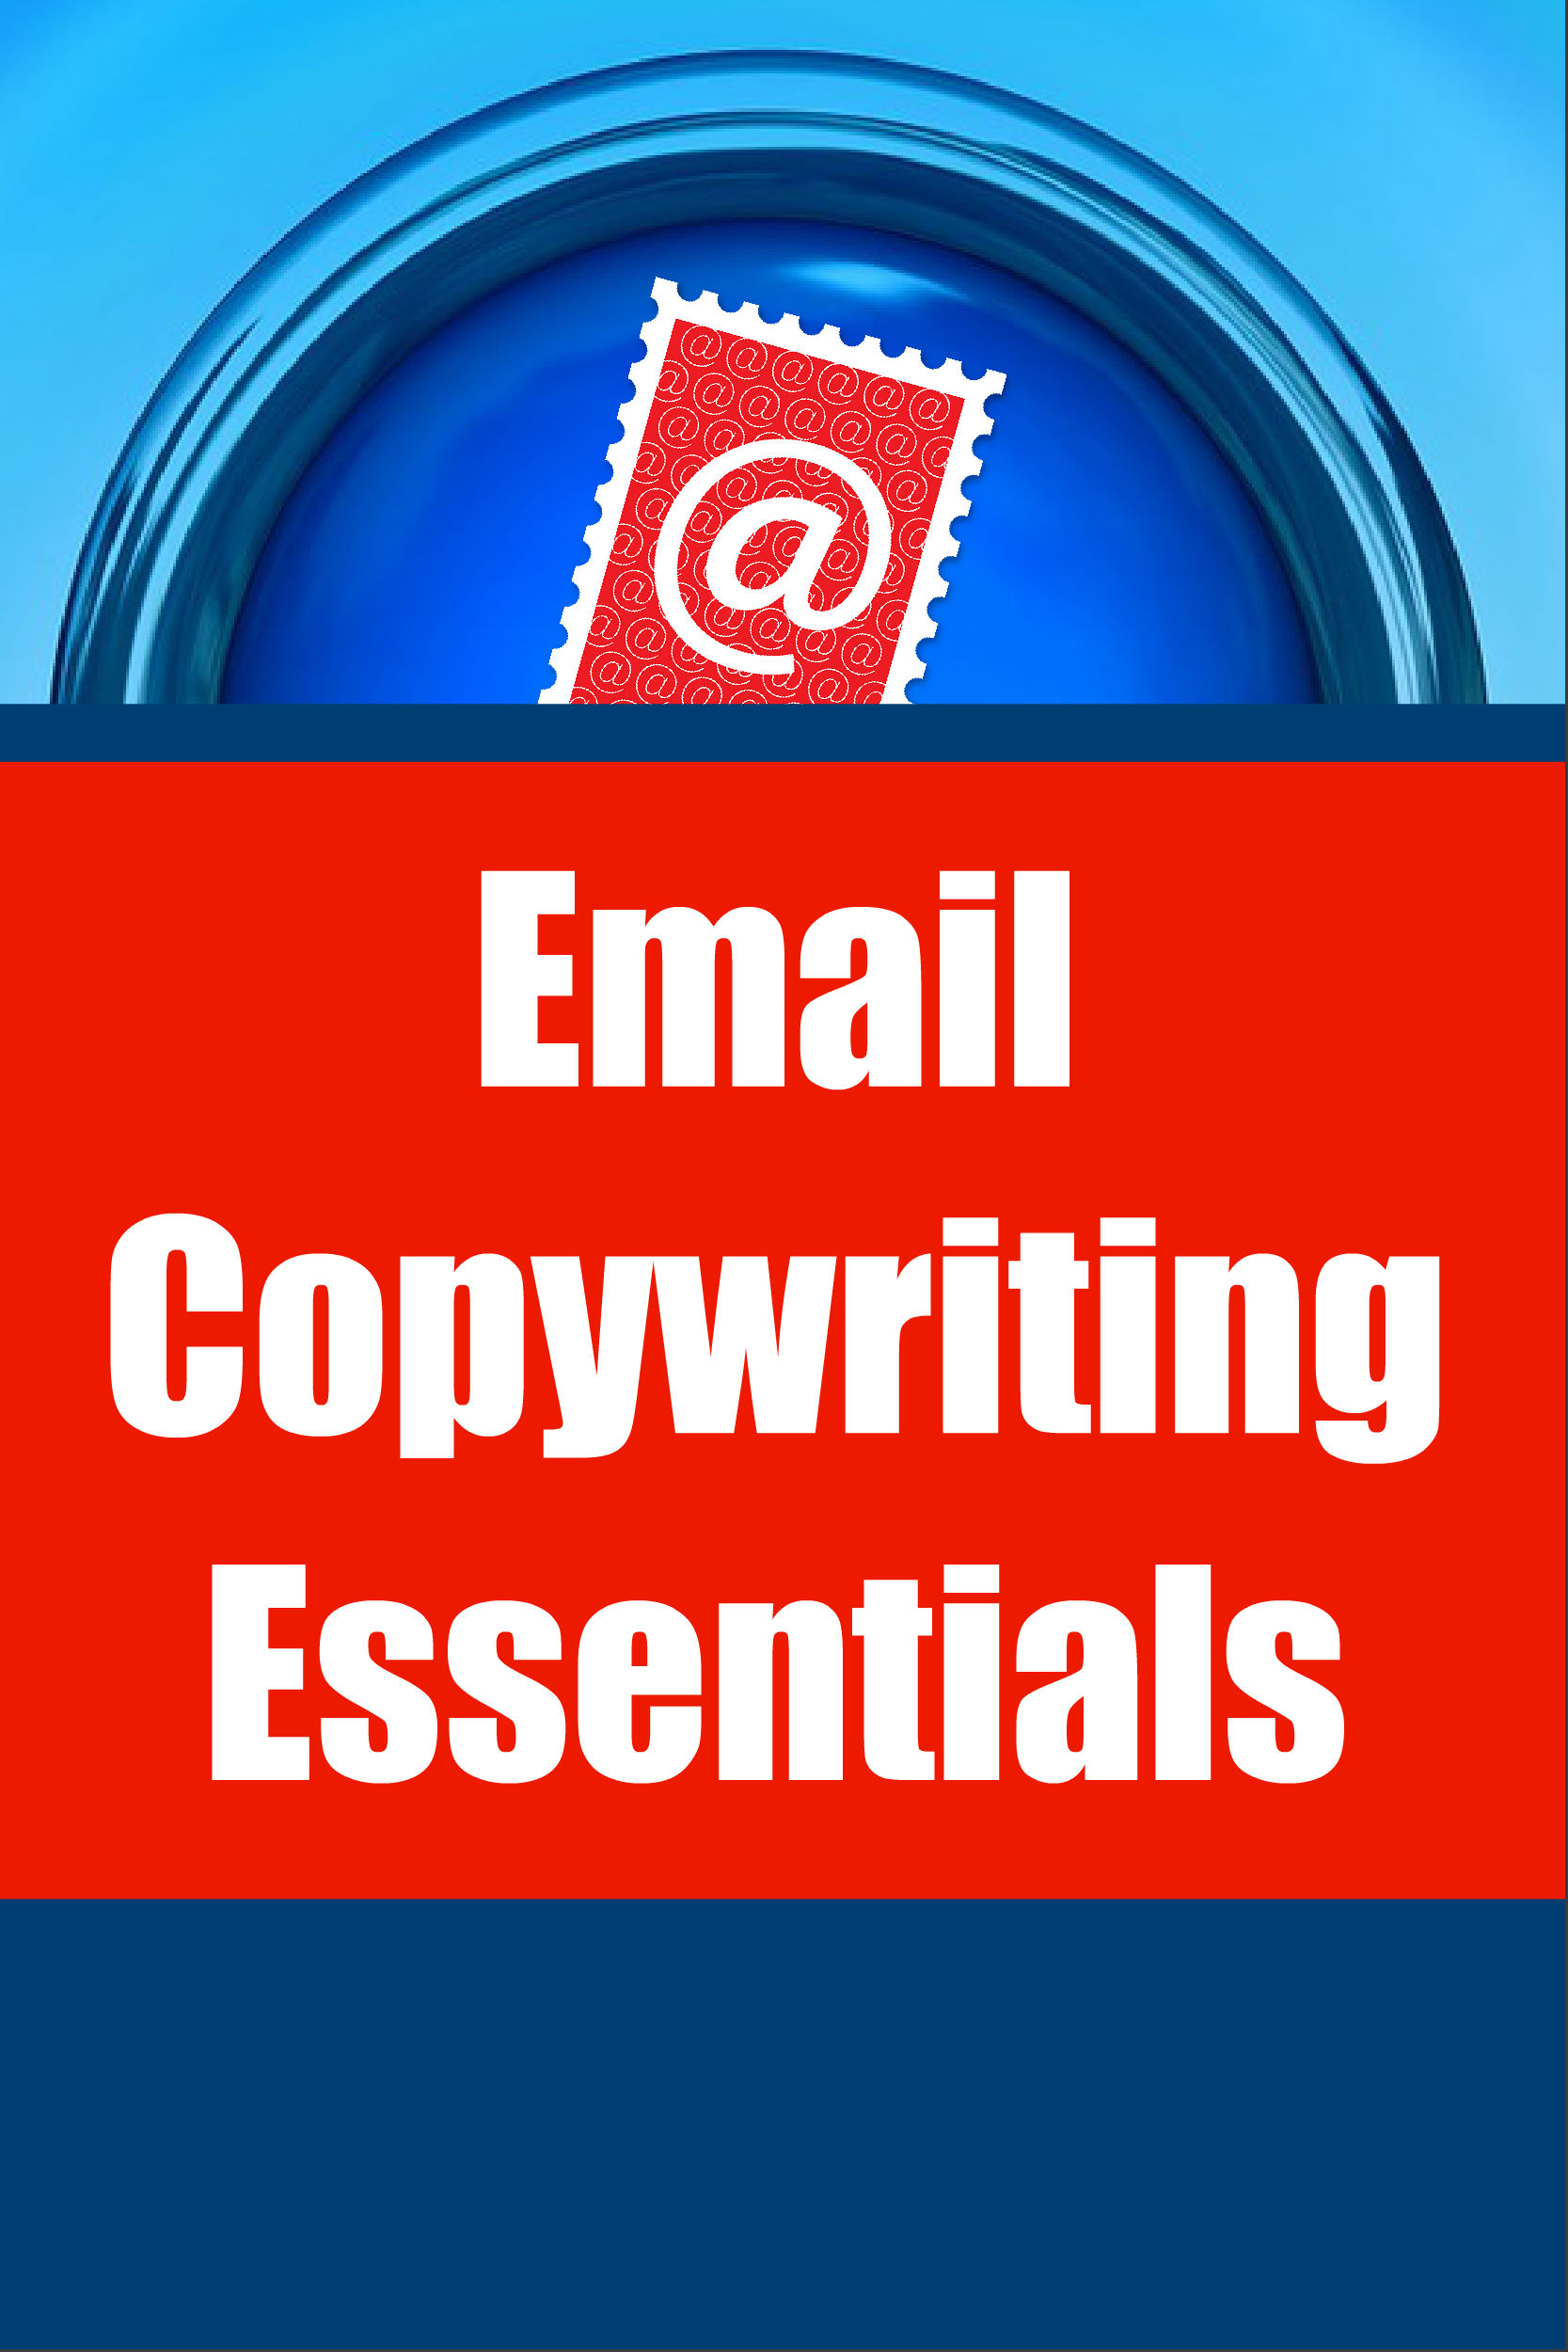 Marketing PLR Course: Email Copywriting Essentials